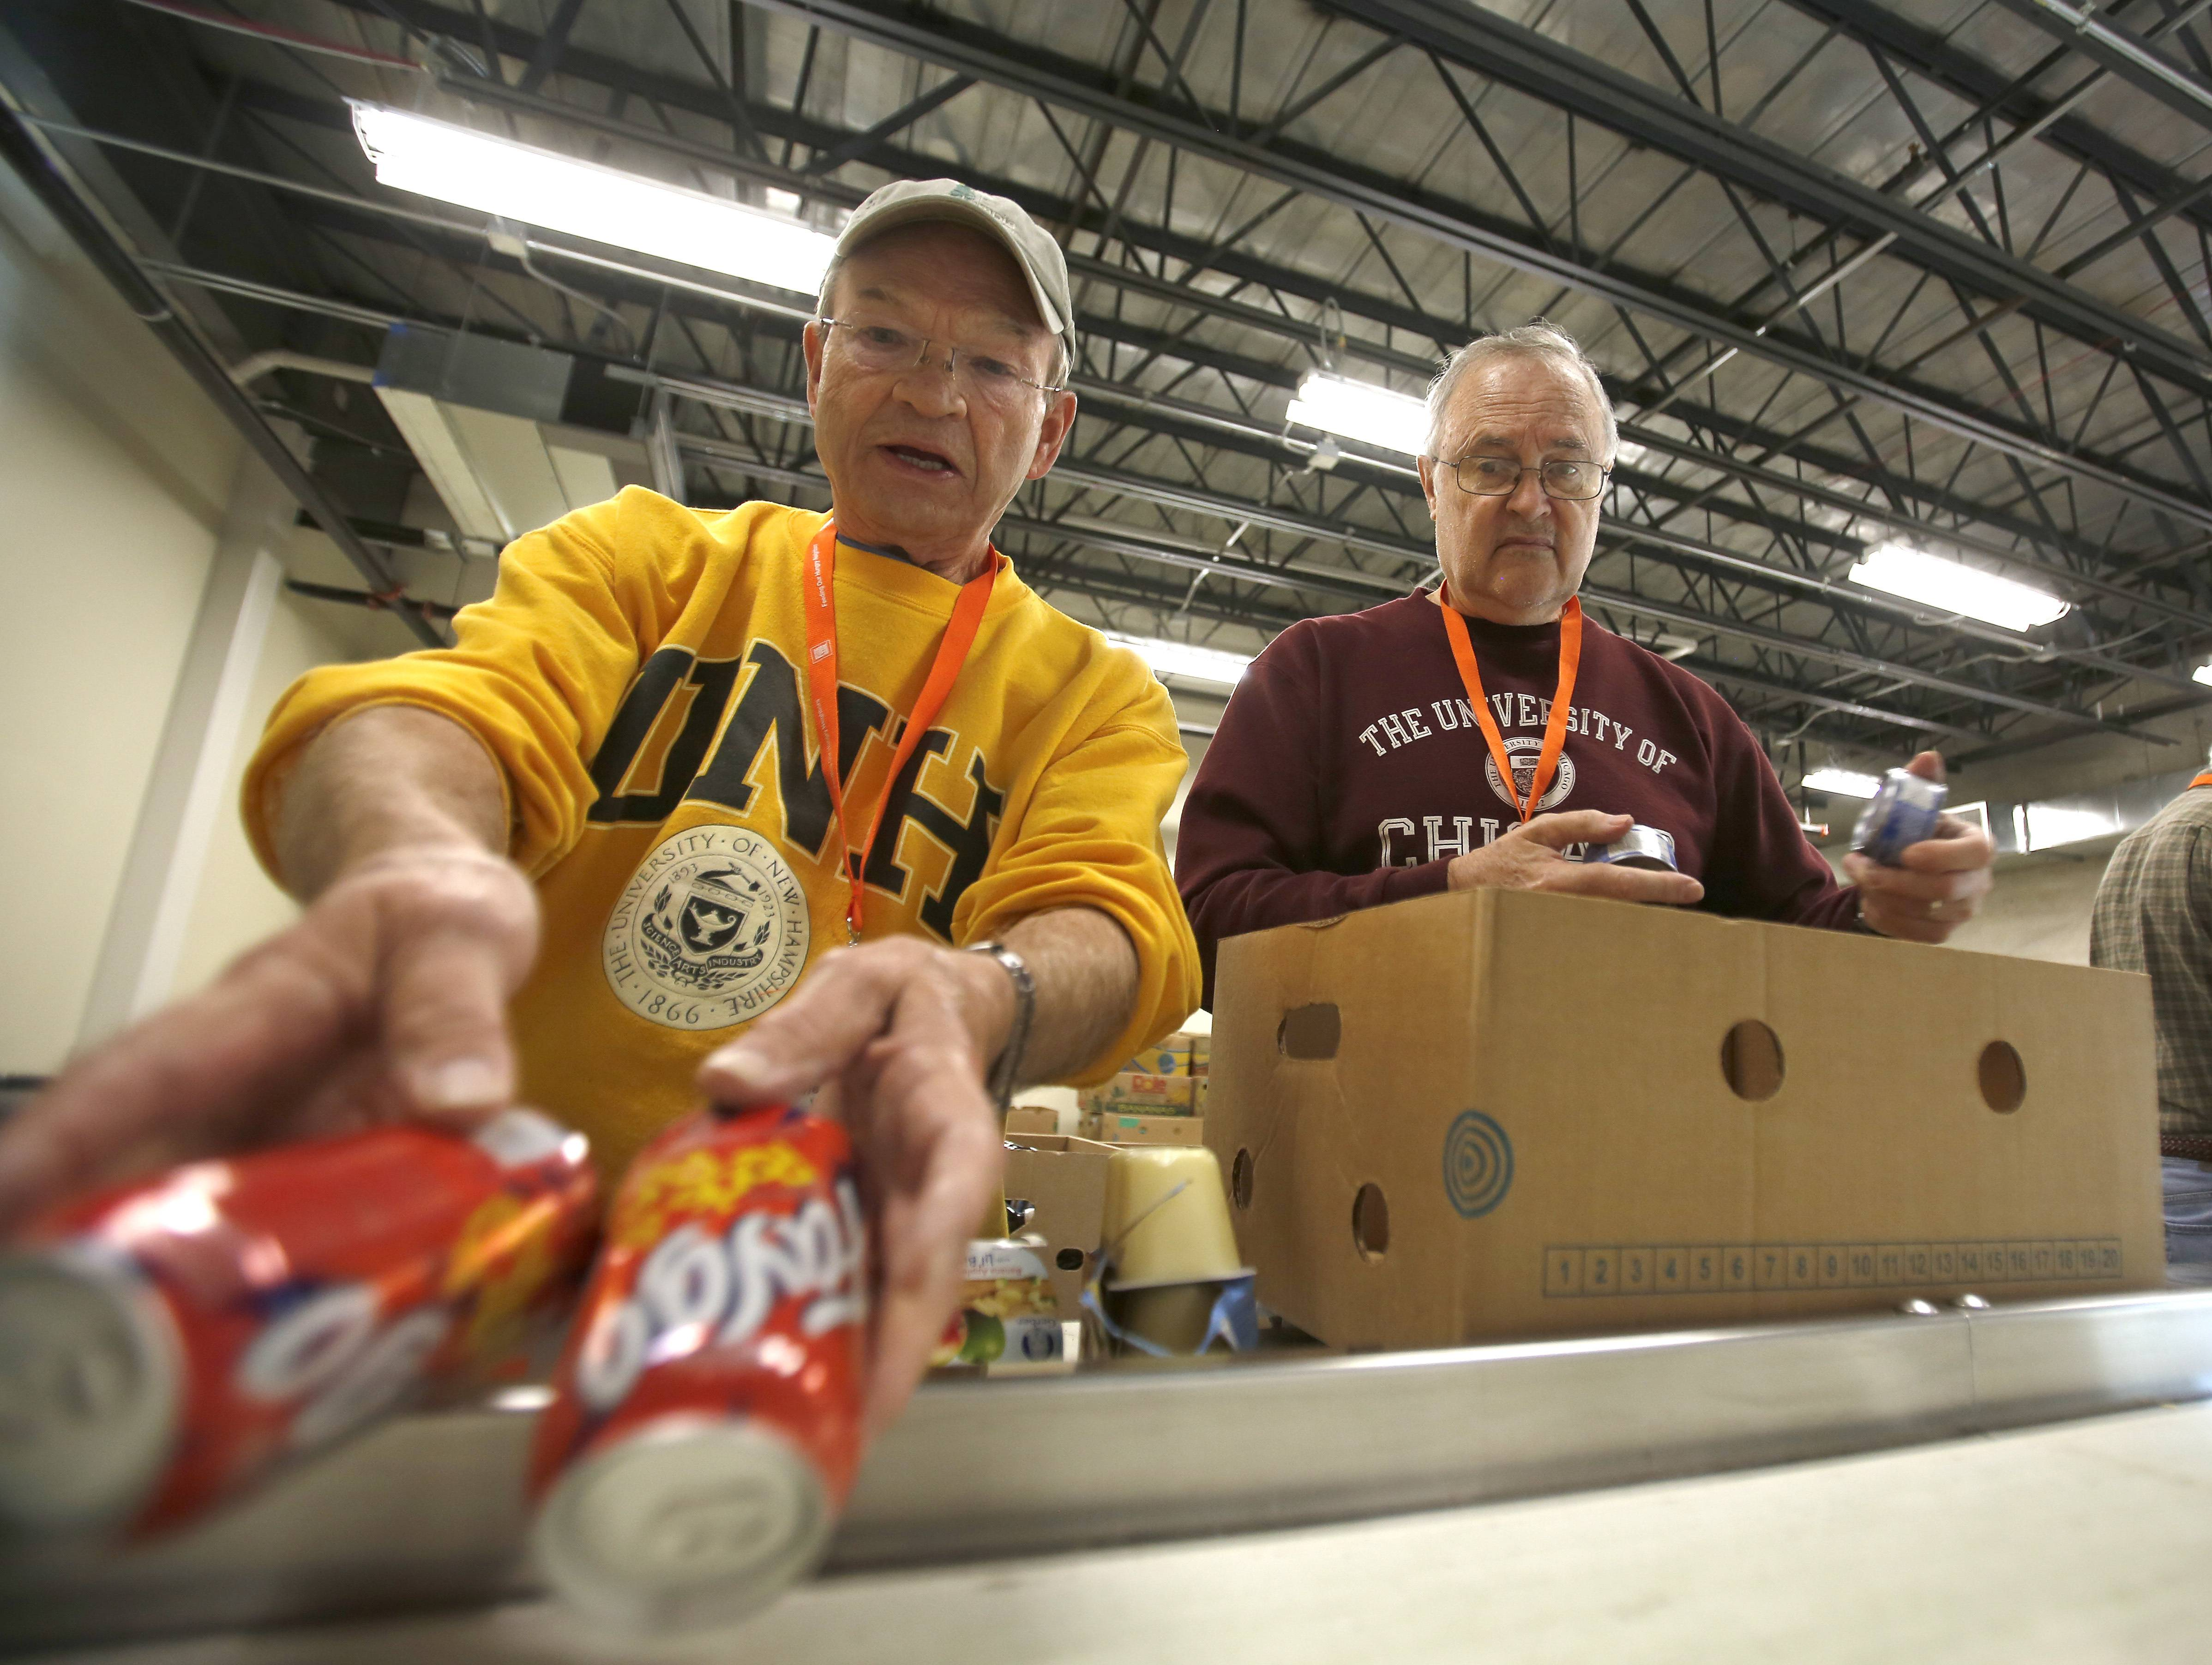 Duane Wickstrom, left, and Dan Edwards, both of Geneva, are regular volunteers at the Northern Illinois Food Bank headquarters in Geneva. They are packing food collected in charity drives, for distribution to pantries in 13 counties in northern Illinois.